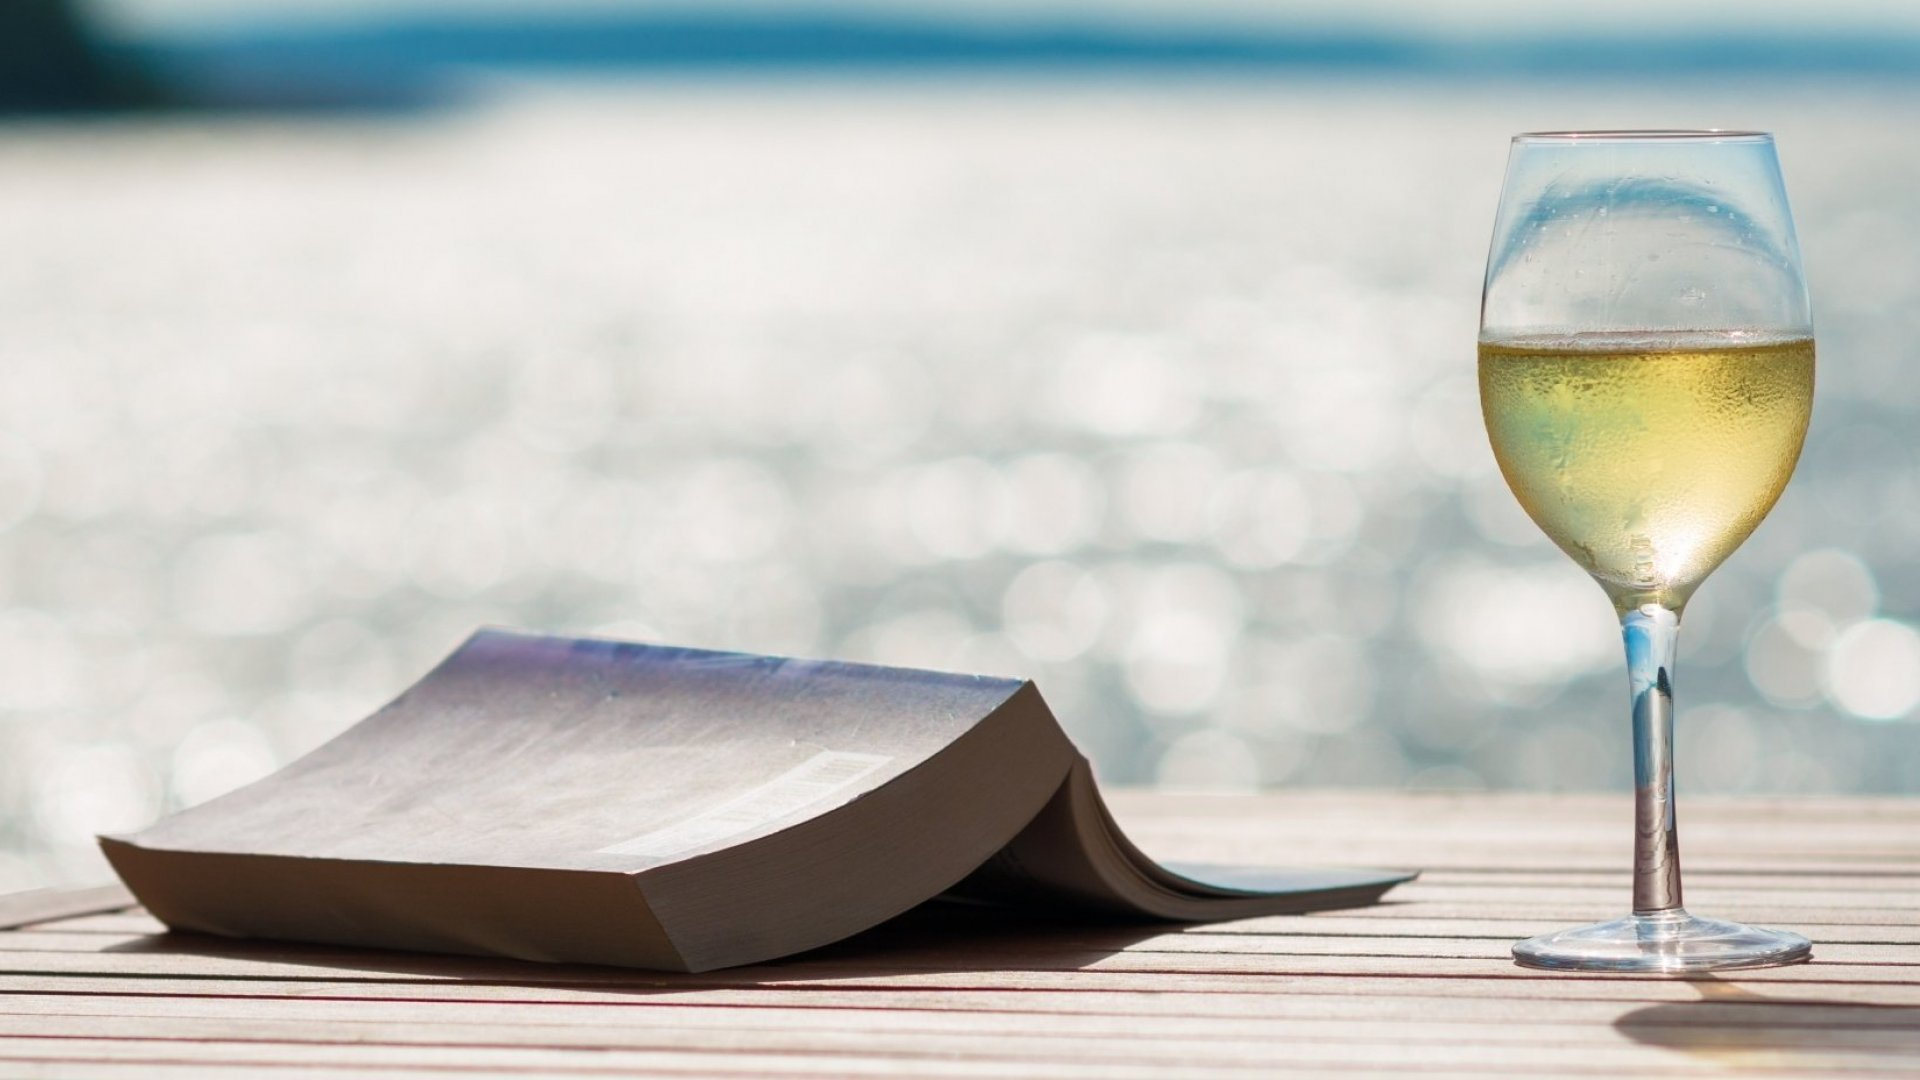 7 Perfect Books to Read on the Beach, According to Famous Billionaires